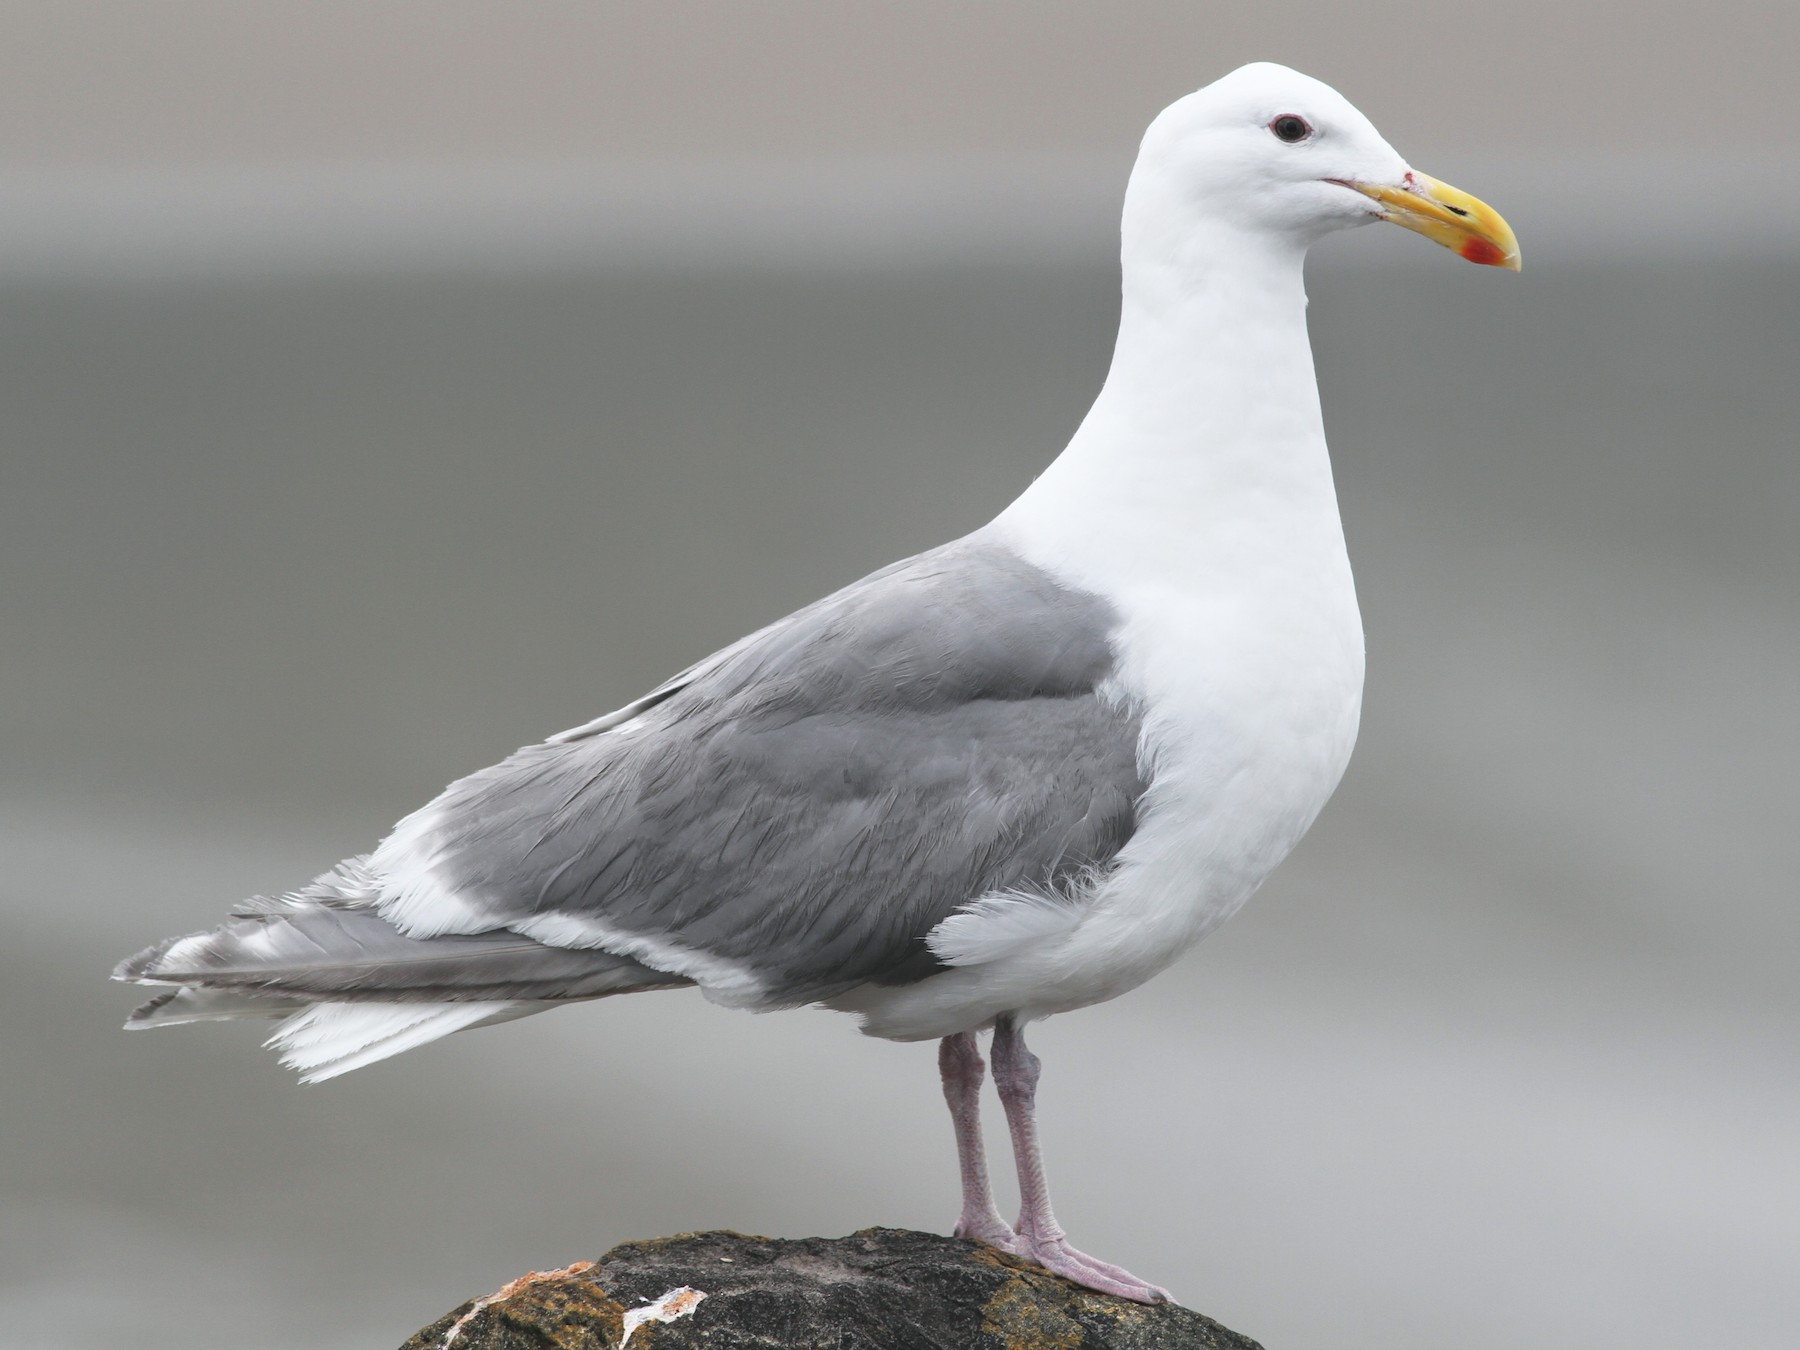 Glaucous-winged Gull - Shawn Billerman